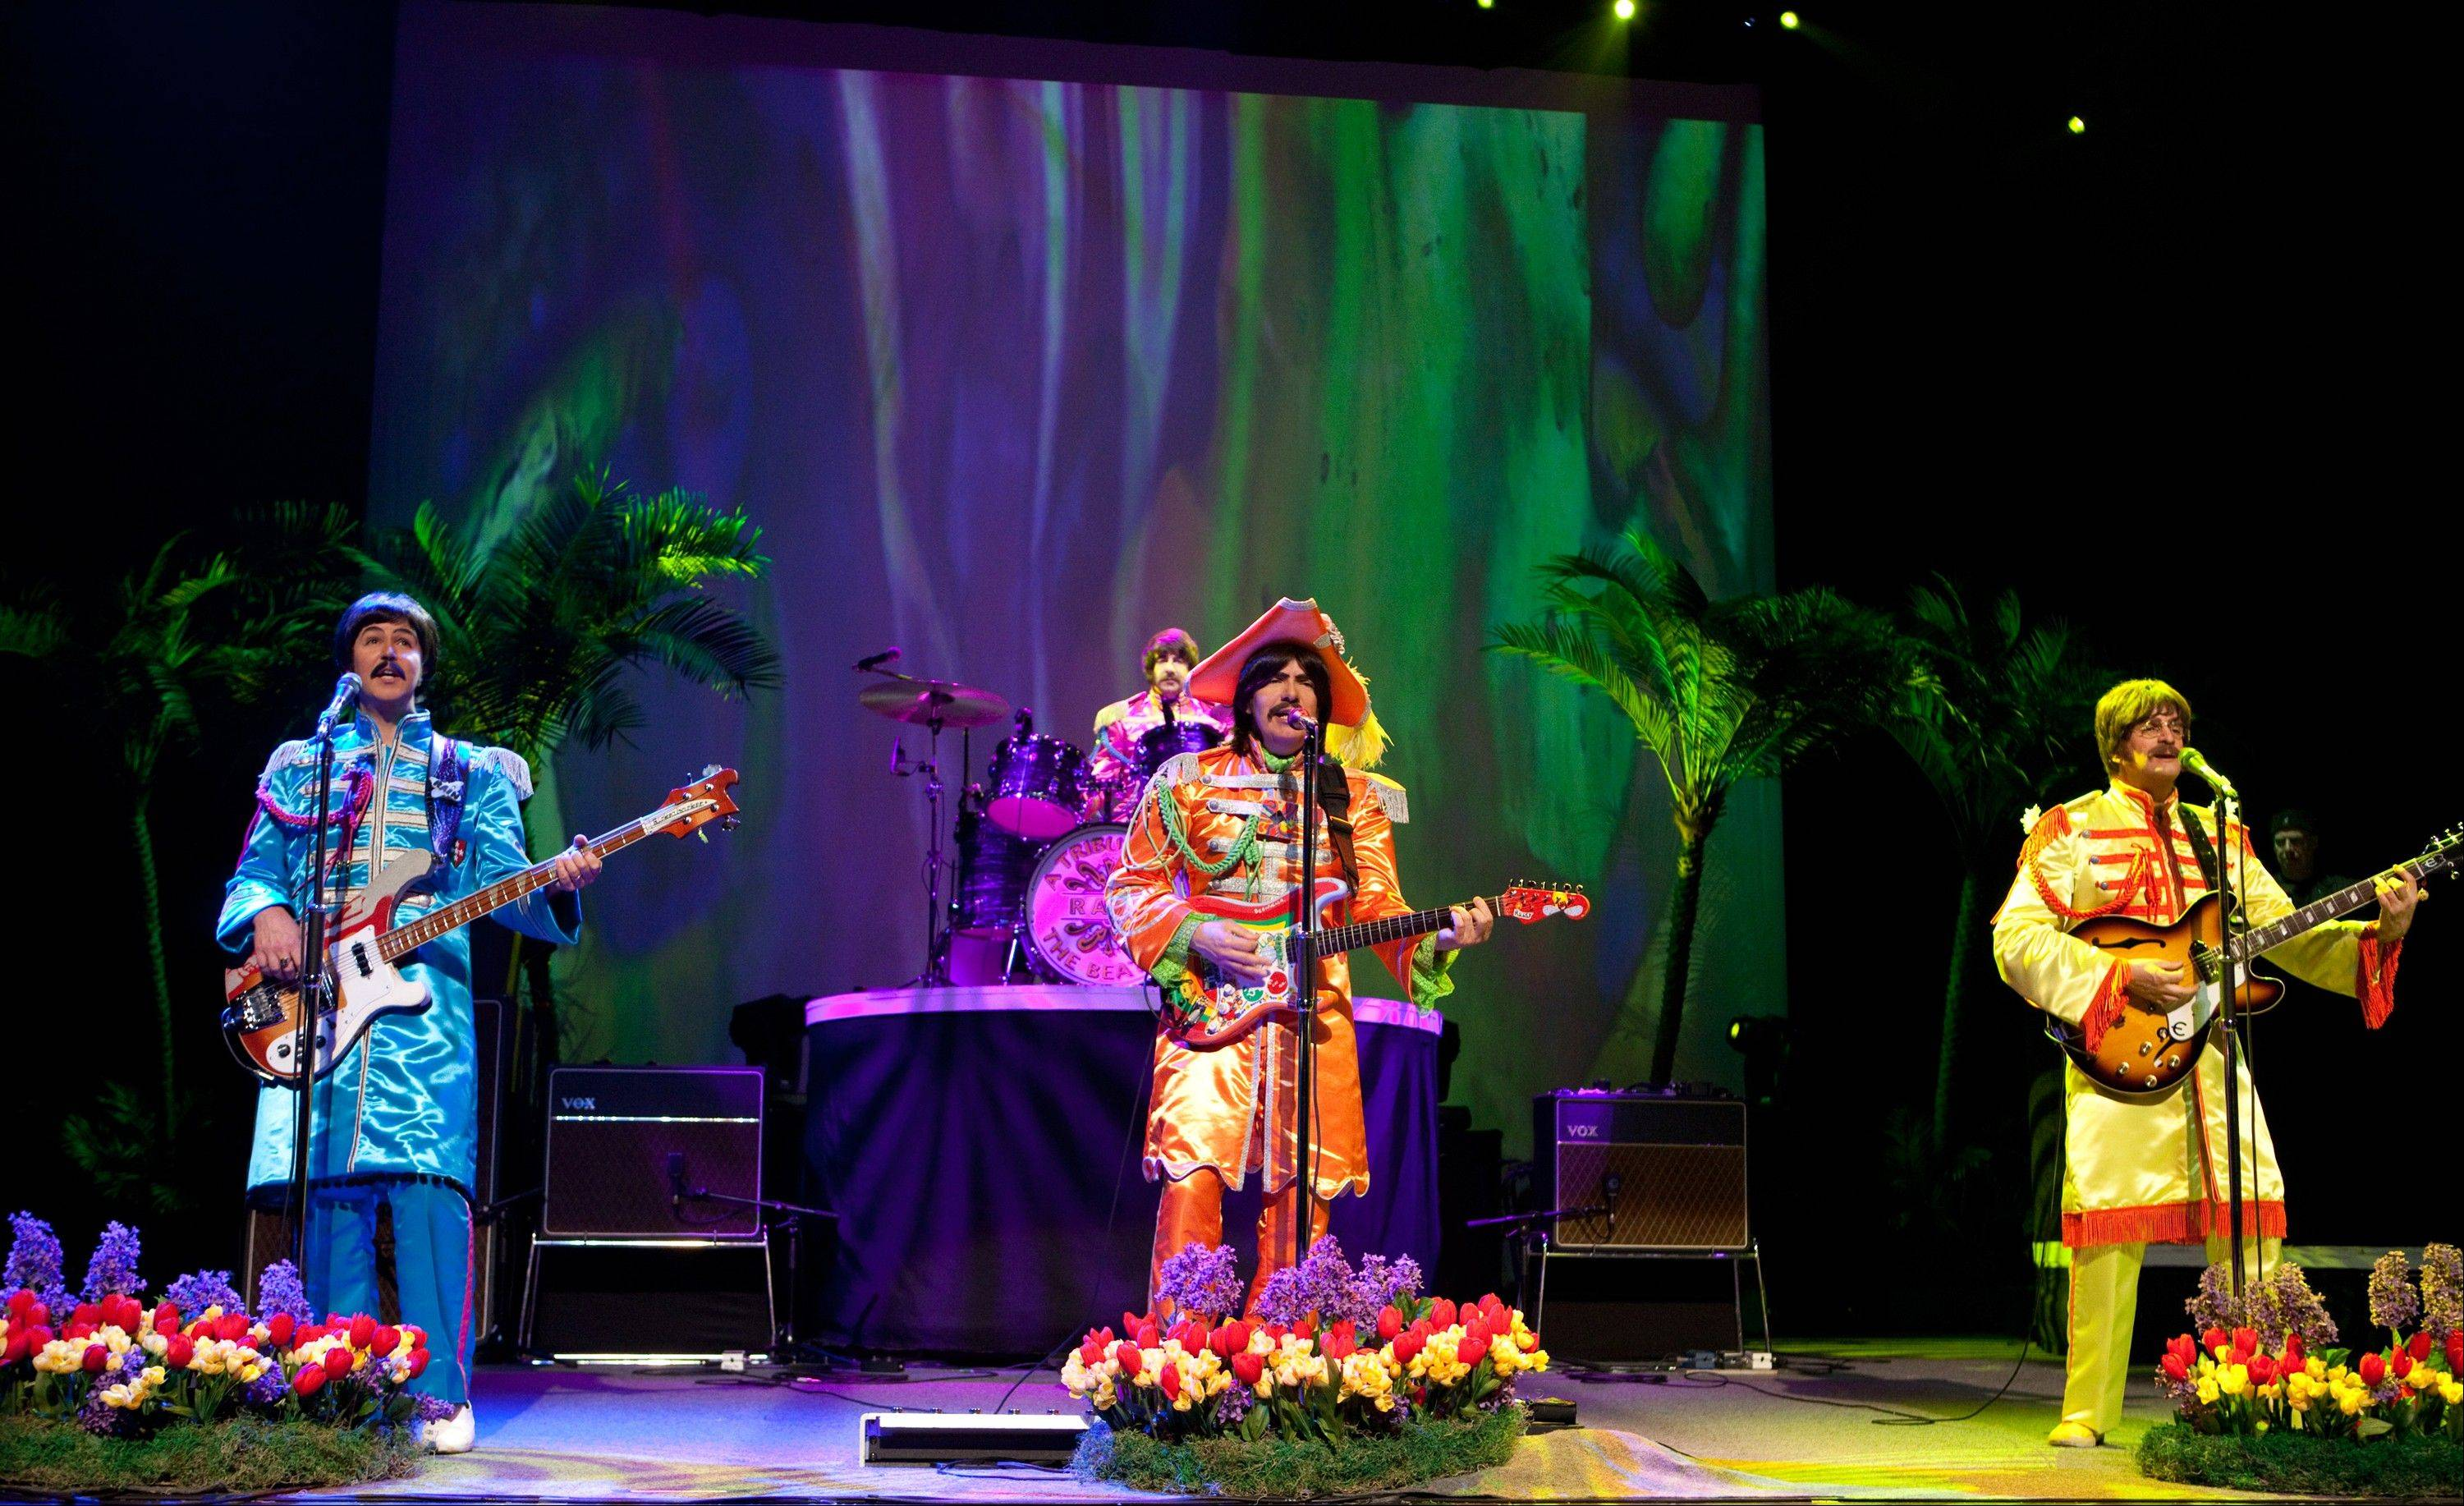 """Rain: A Tribute to the Beatles,"" a Fab Four show that has toured all over the world, returns to the Chicago area for two performances at the Rosemont Theatre on Saturday, Oct. 26."